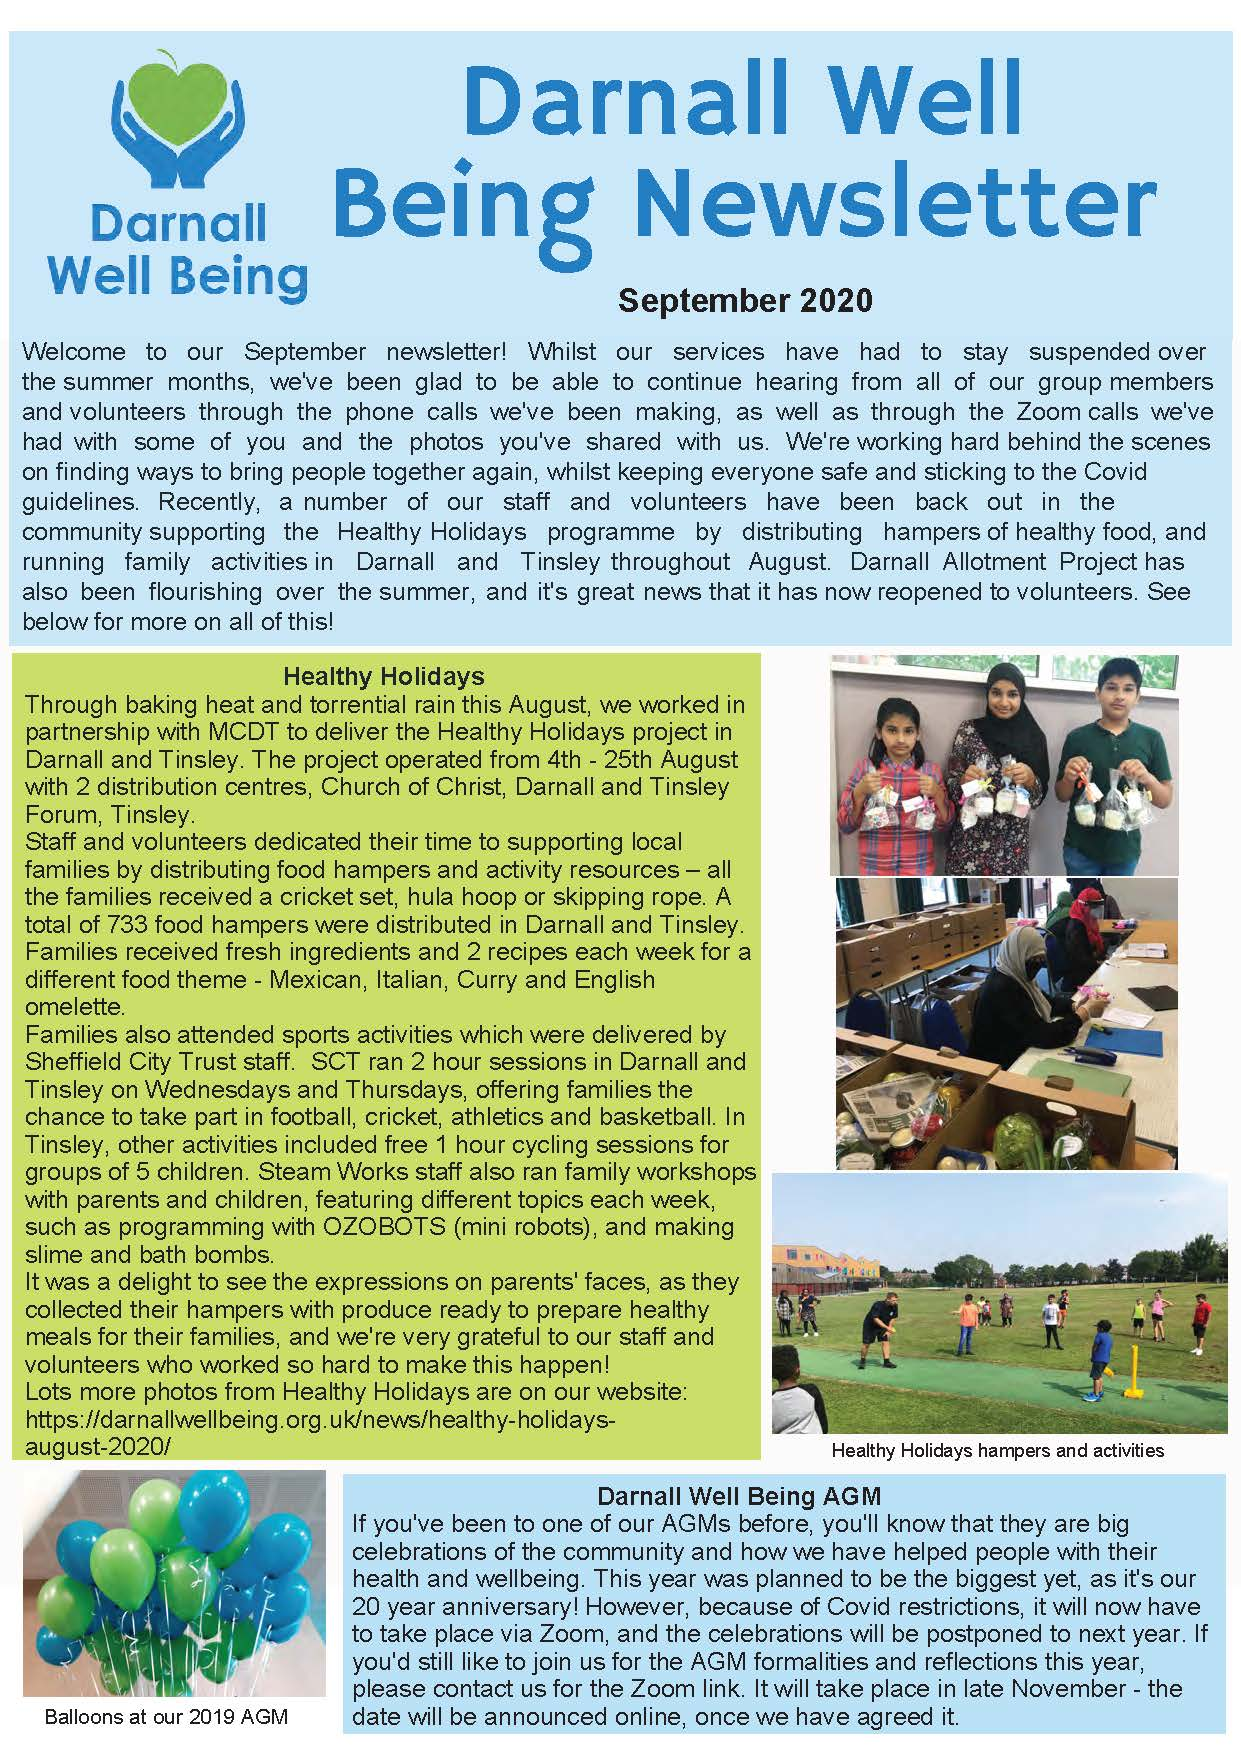 Photo of page 1 of DWB newsletter